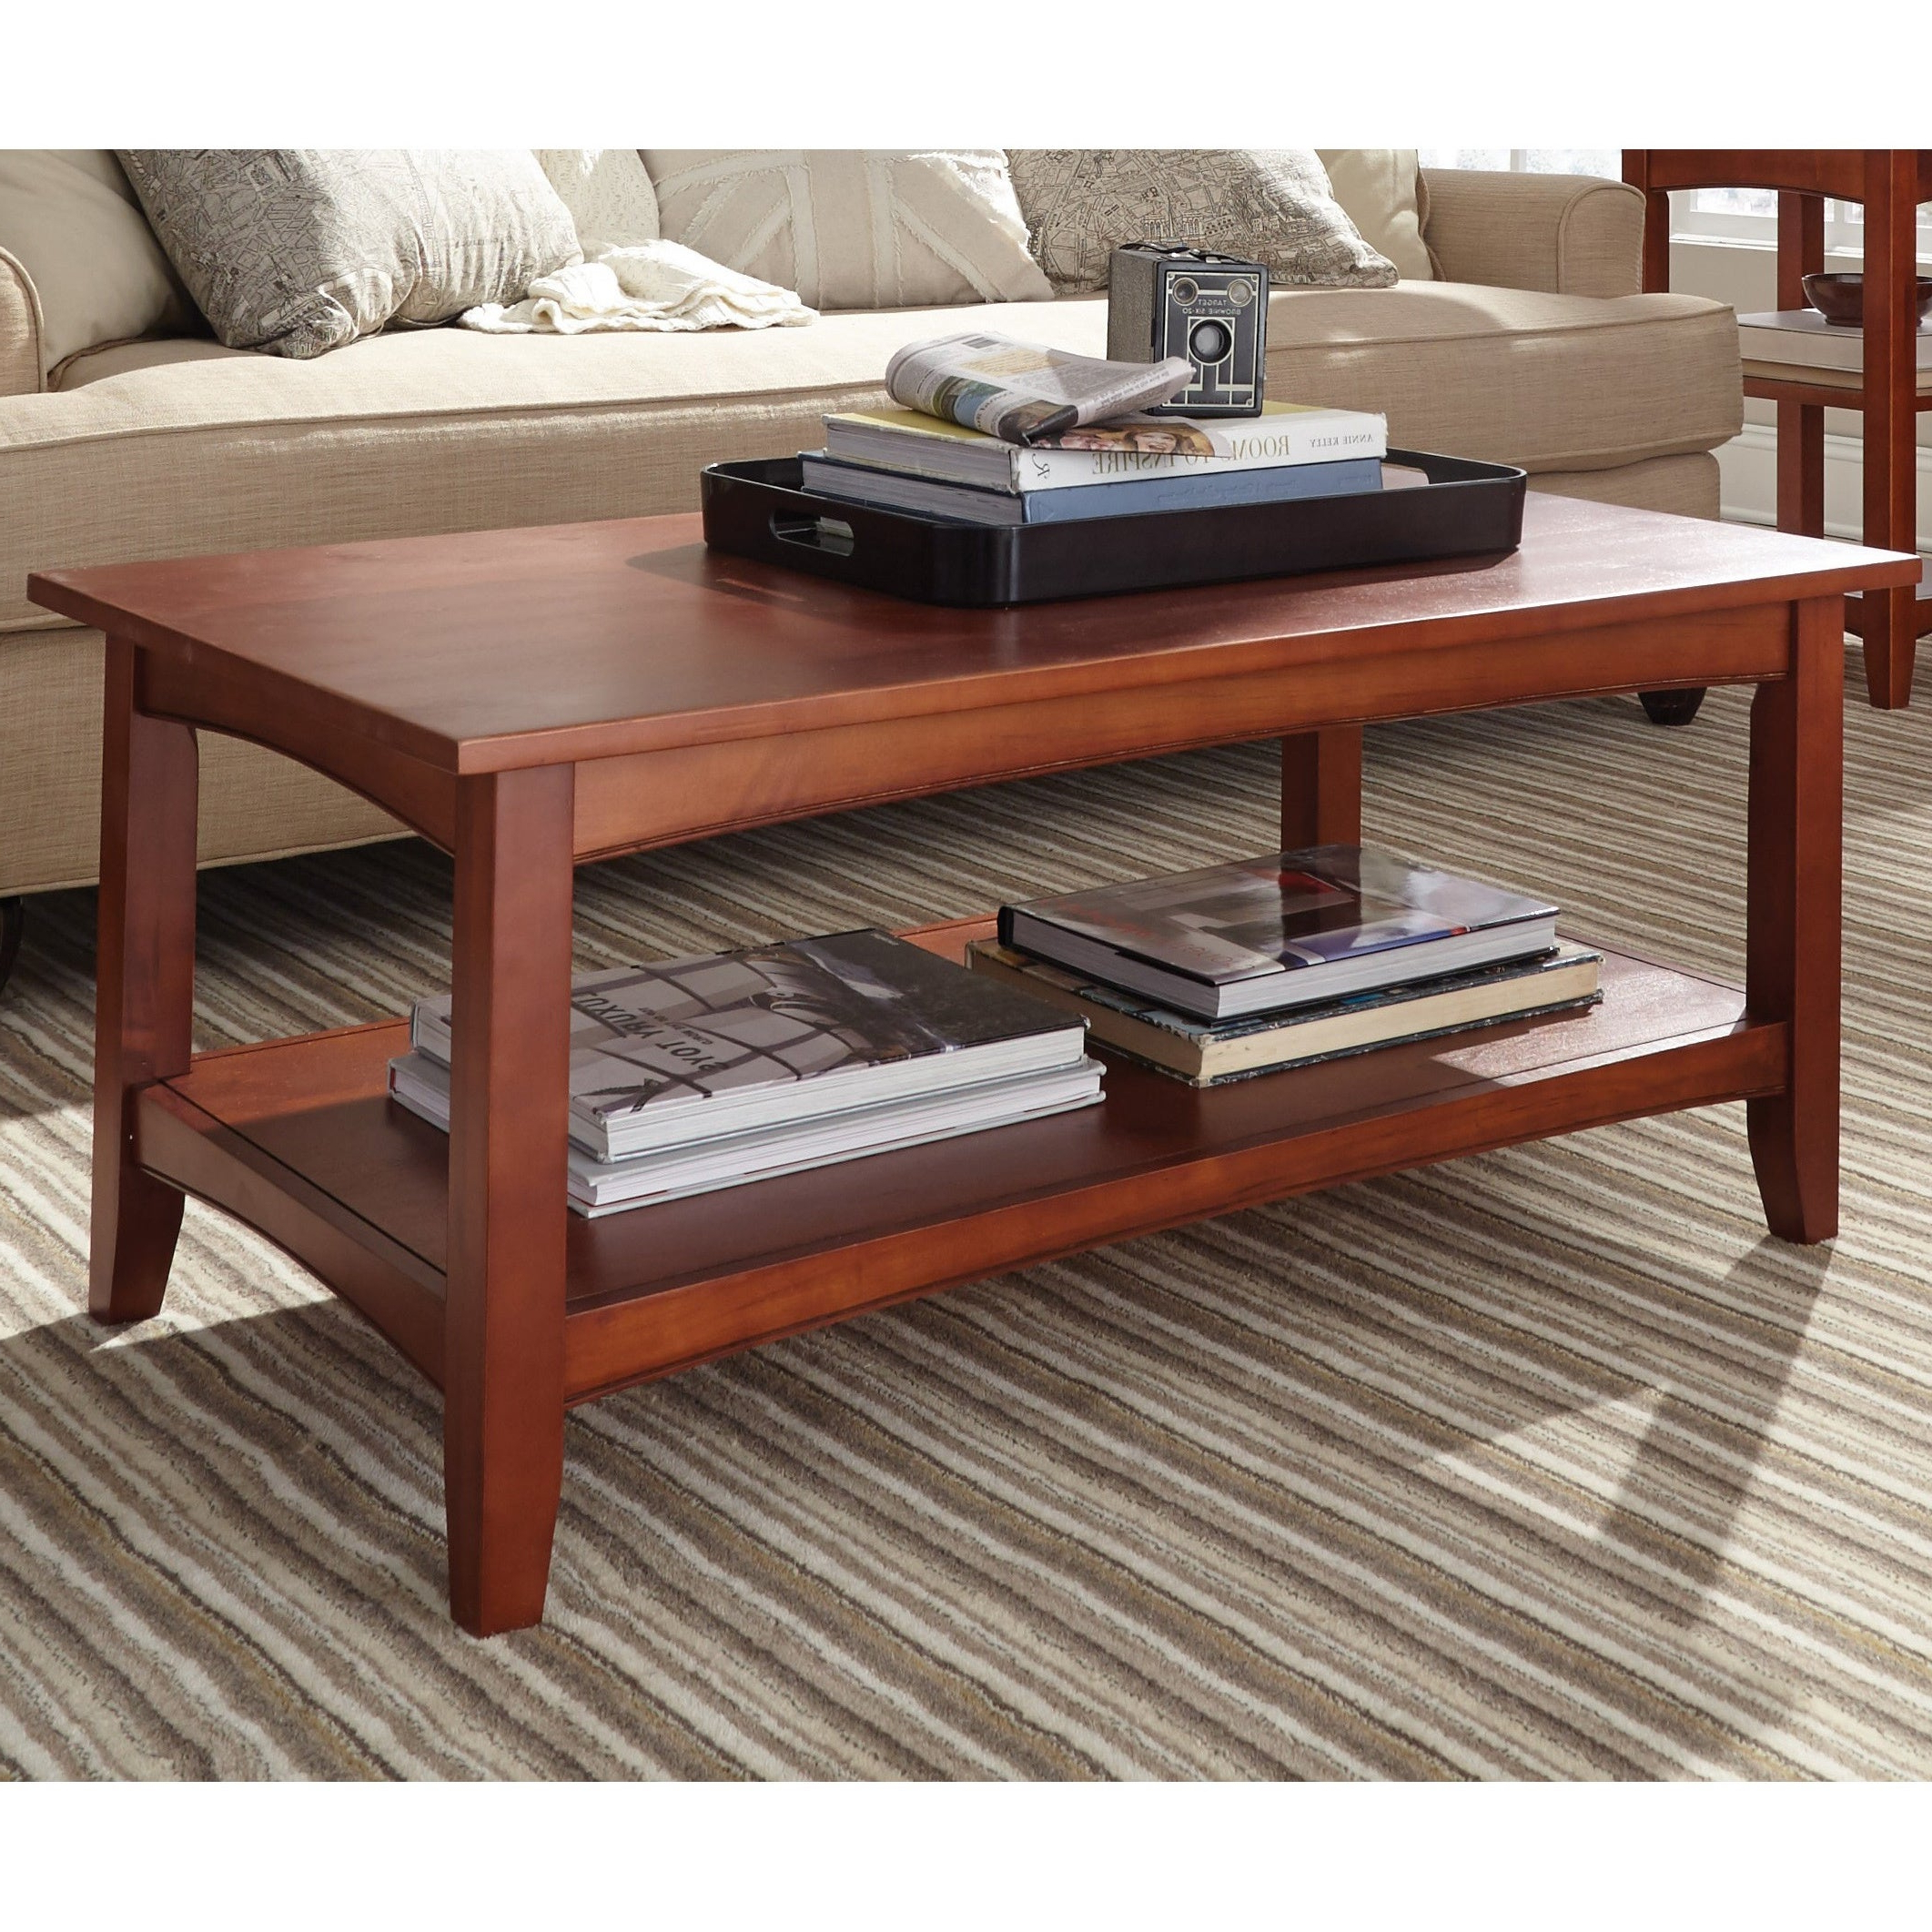 Copper Grove Daintree 42 Inch Wood Coffee Table With Shelf With Regard To Recent Copper Grove Bowron Dark Cherry Coffee Tables (View 5 of 20)